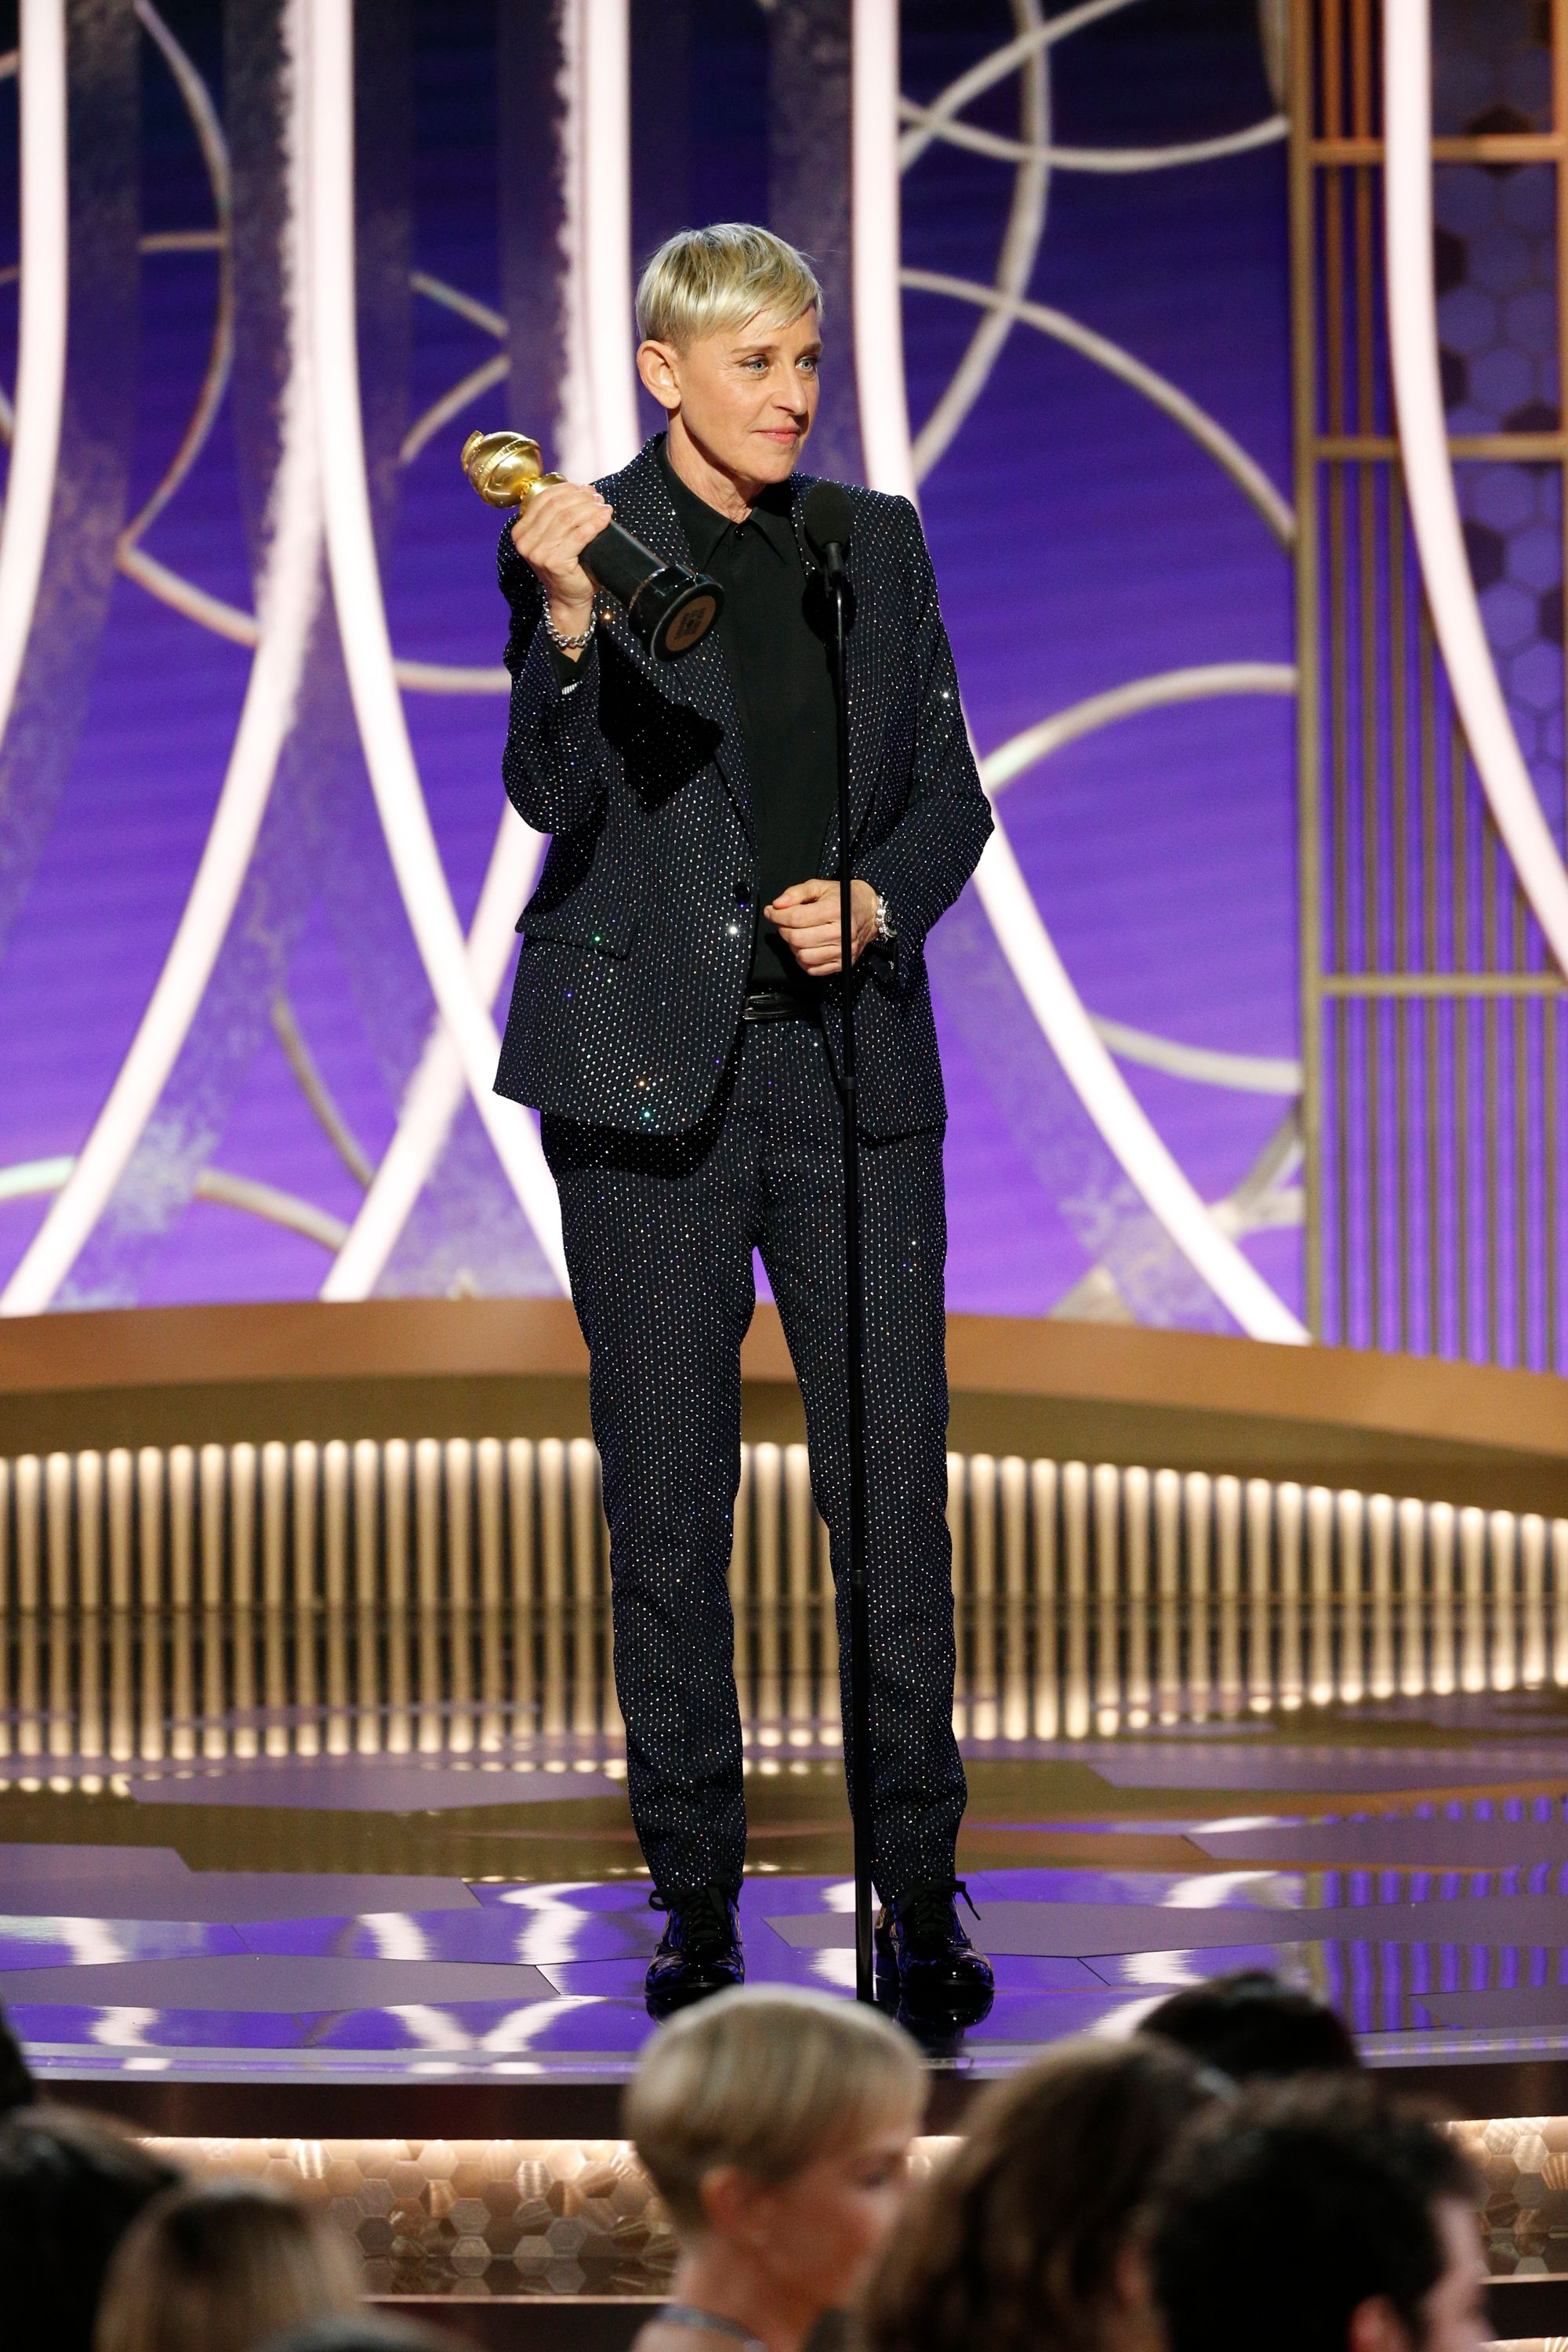 Ellen DeGeneres accepts the CAROL BURNETT AWARD onstage during the 77th Annual Golden Globe Awards at The Beverly Hilton Hotel on January 5, 2020 in Beverly Hills, California. | Source: Getty Images